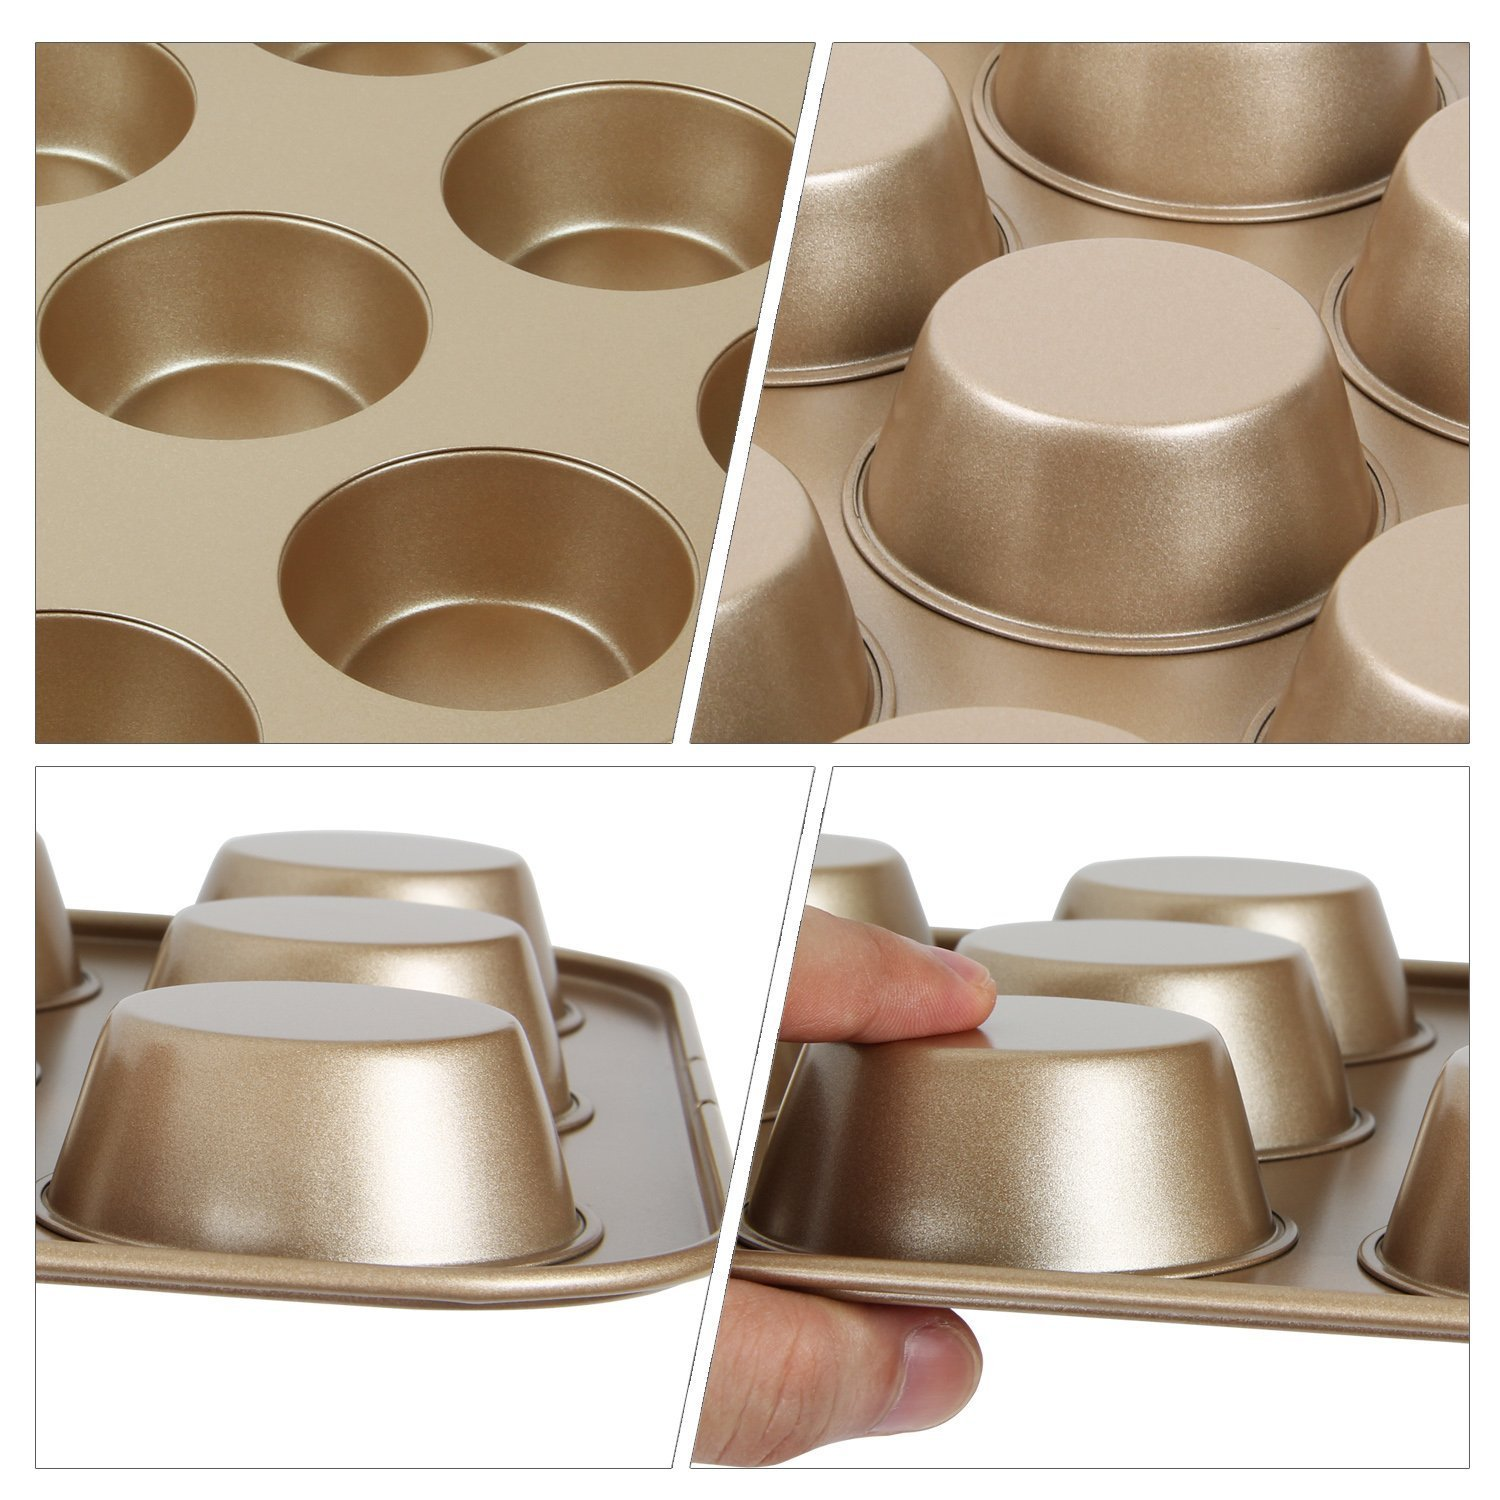 Beneking 12 Cup Muffin Pan, Non-Stick Bakeware for Perfect Cupcake Results Small Size 2 Pack Golden